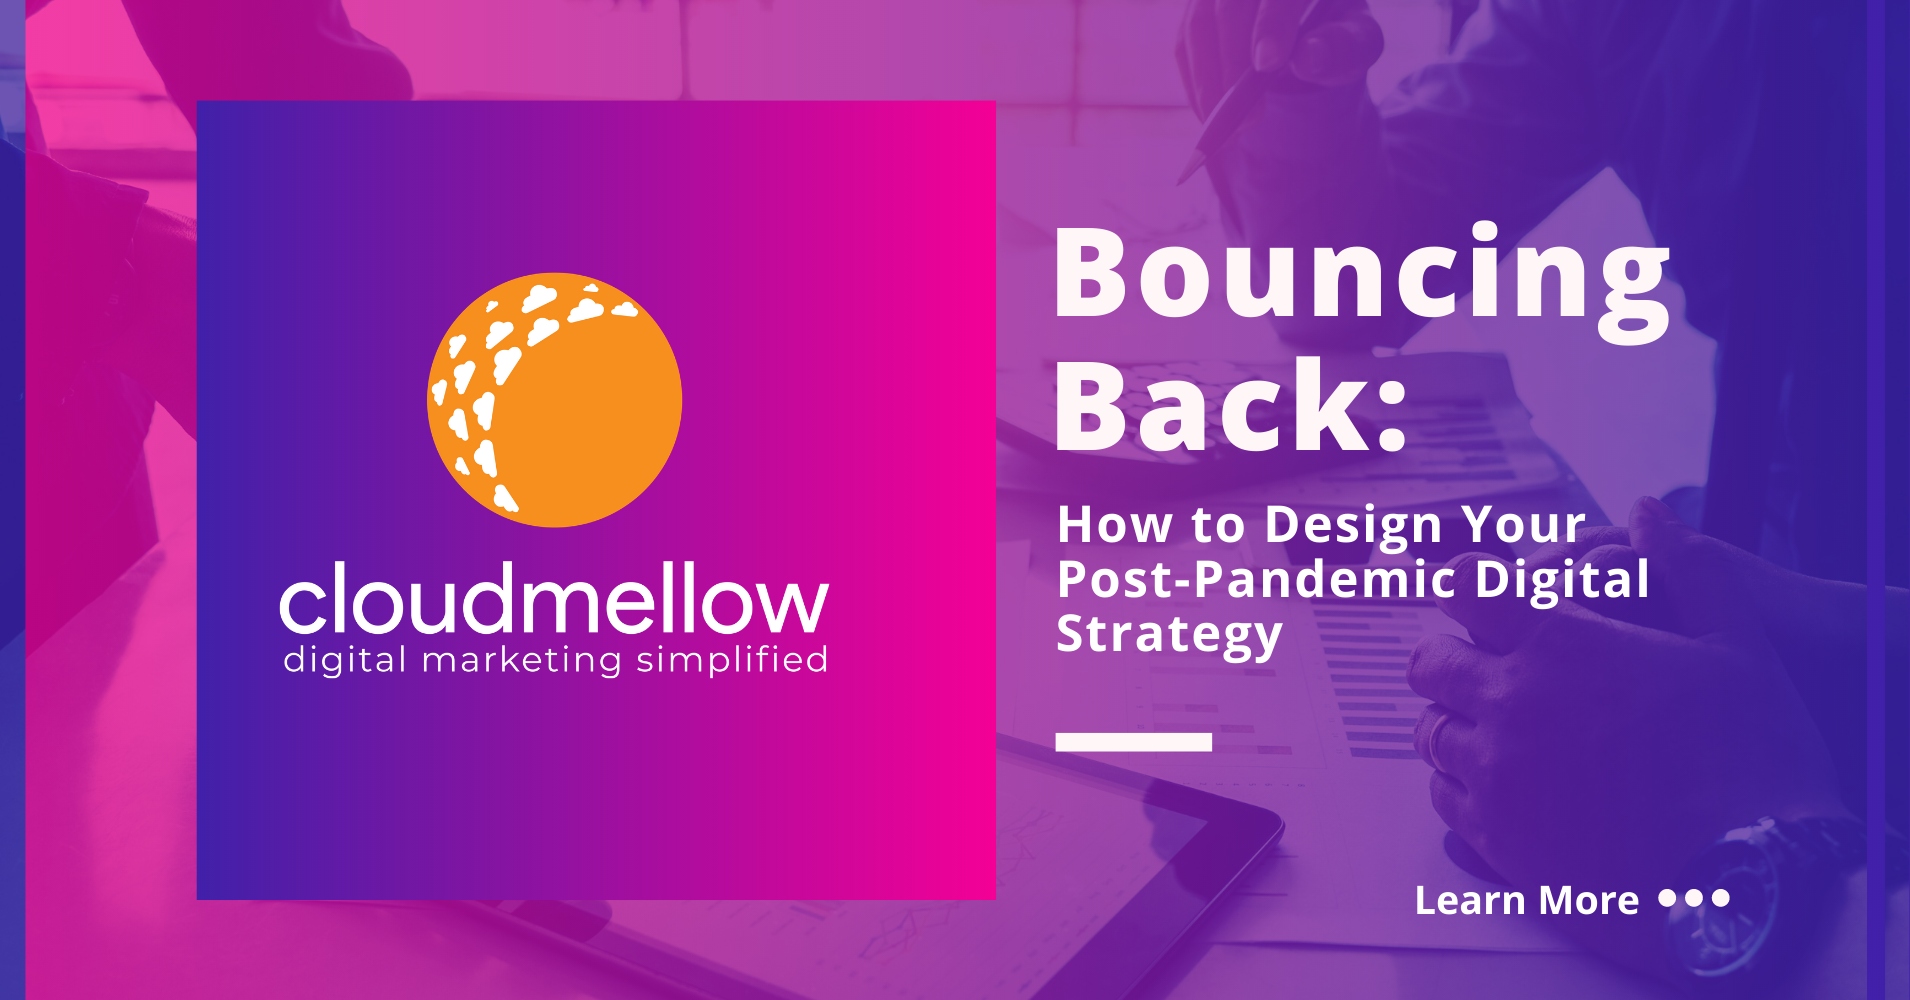 Bouncing-Back-How-to-Design-Your-Post-Pandemic-Digital-Strategy